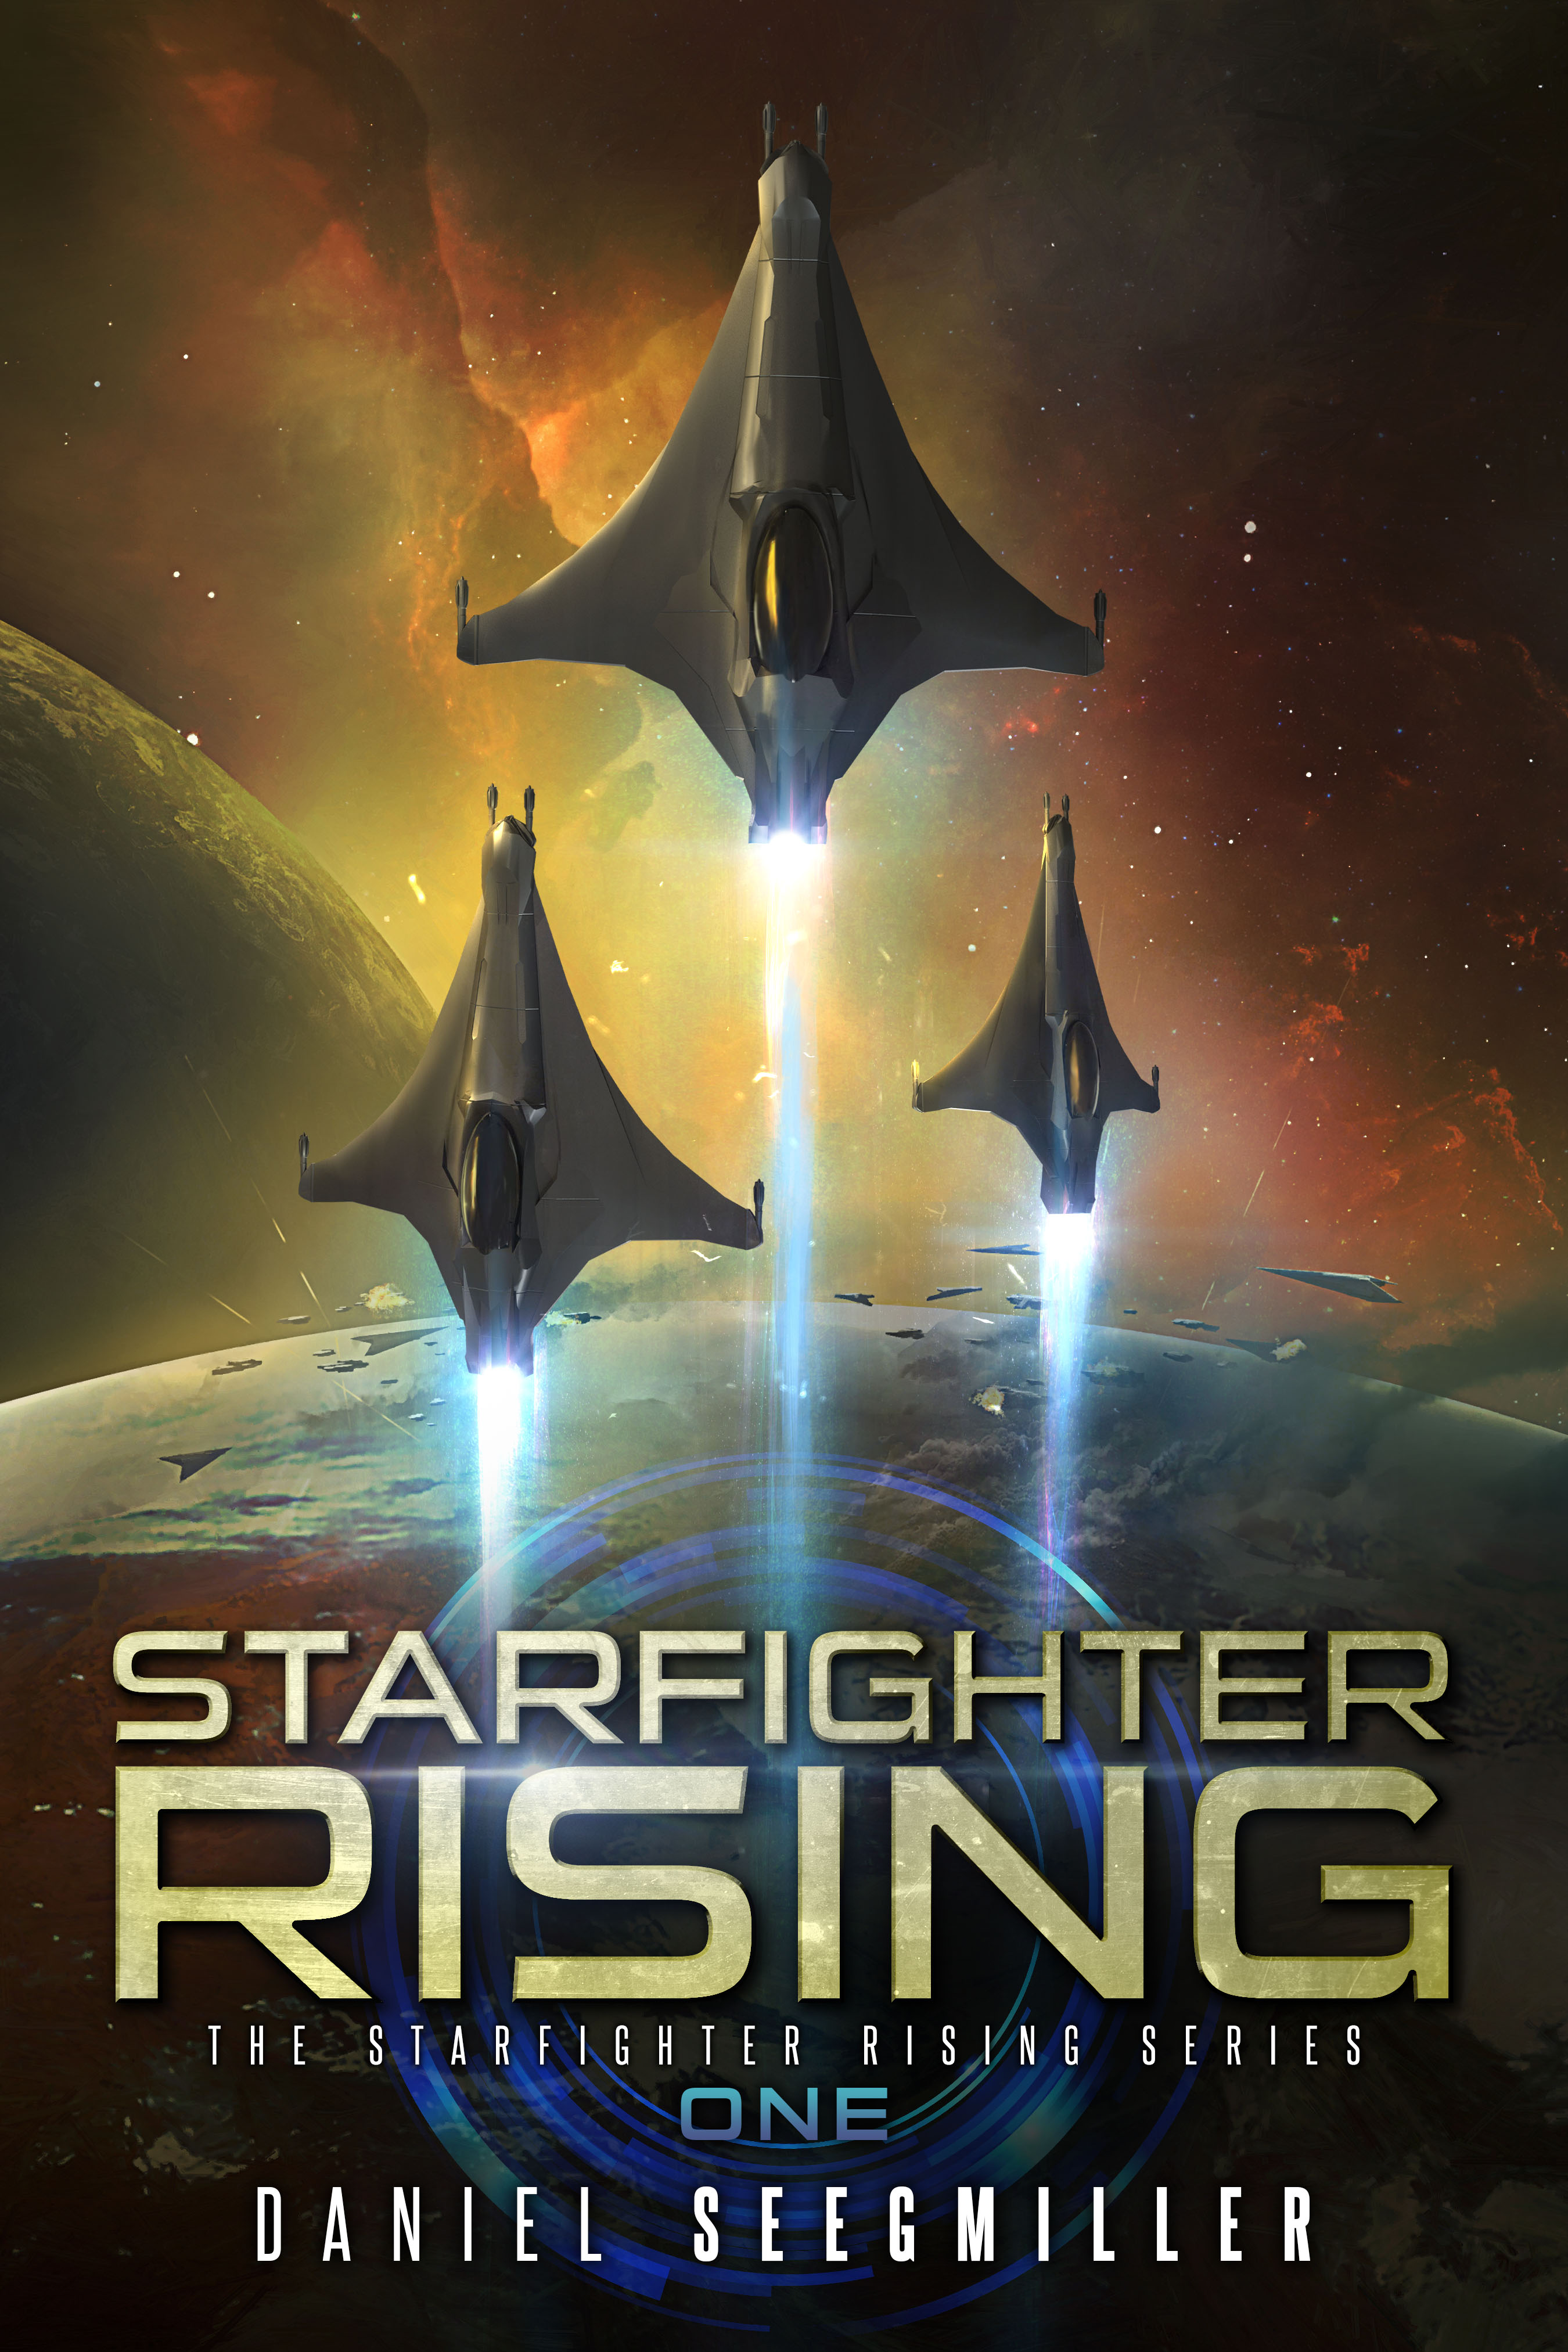 Materials: Starfighter Rising cover